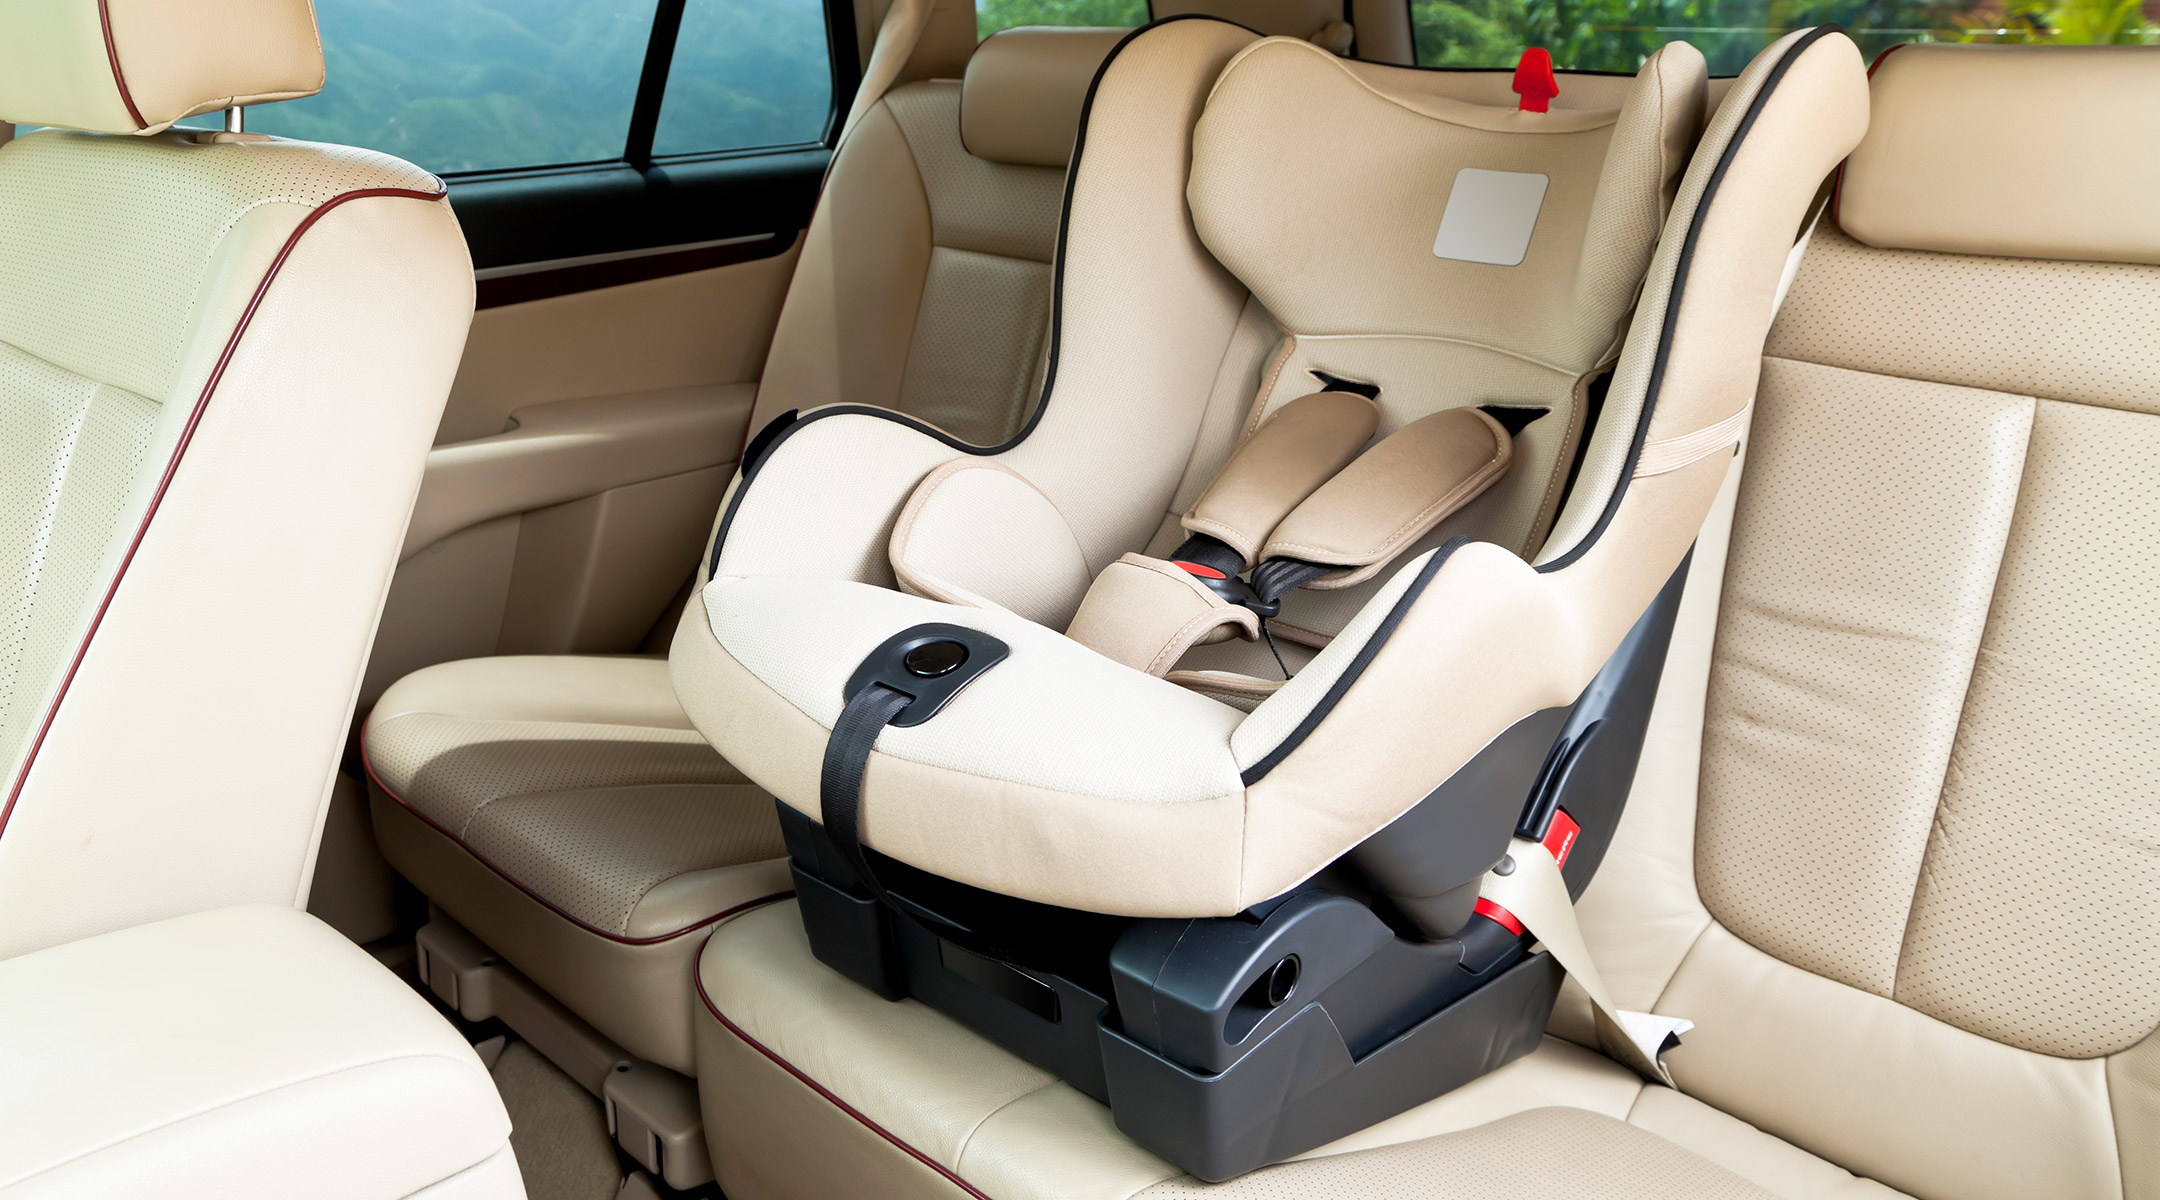 Car Seat Expiration: How Long Are Car